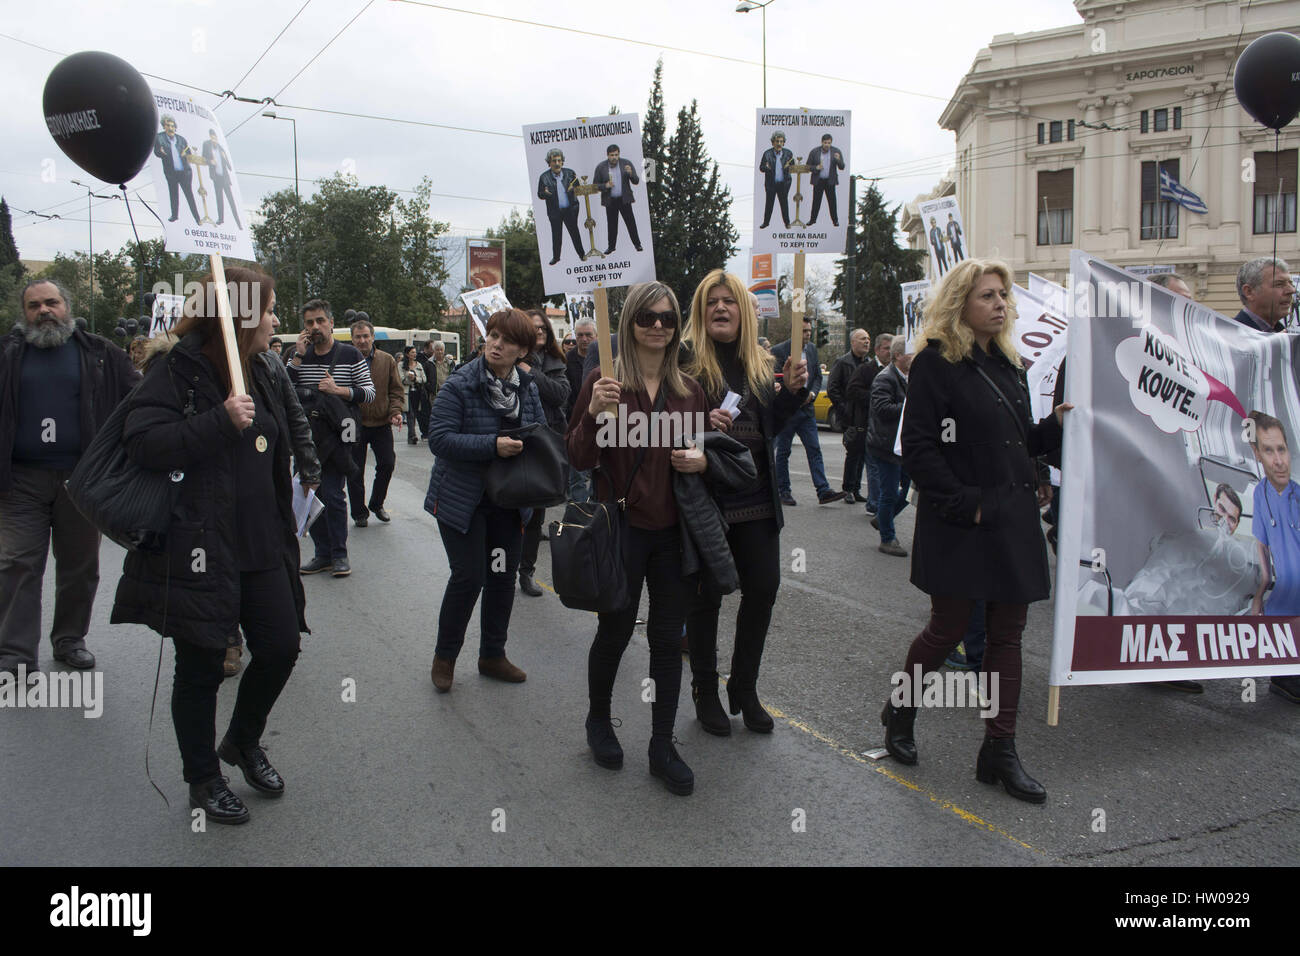 Athens, Greece. 15th Mar, 2017. Public healthcare workers march shouting slogans and holding banners and black balloons. - Stock Image